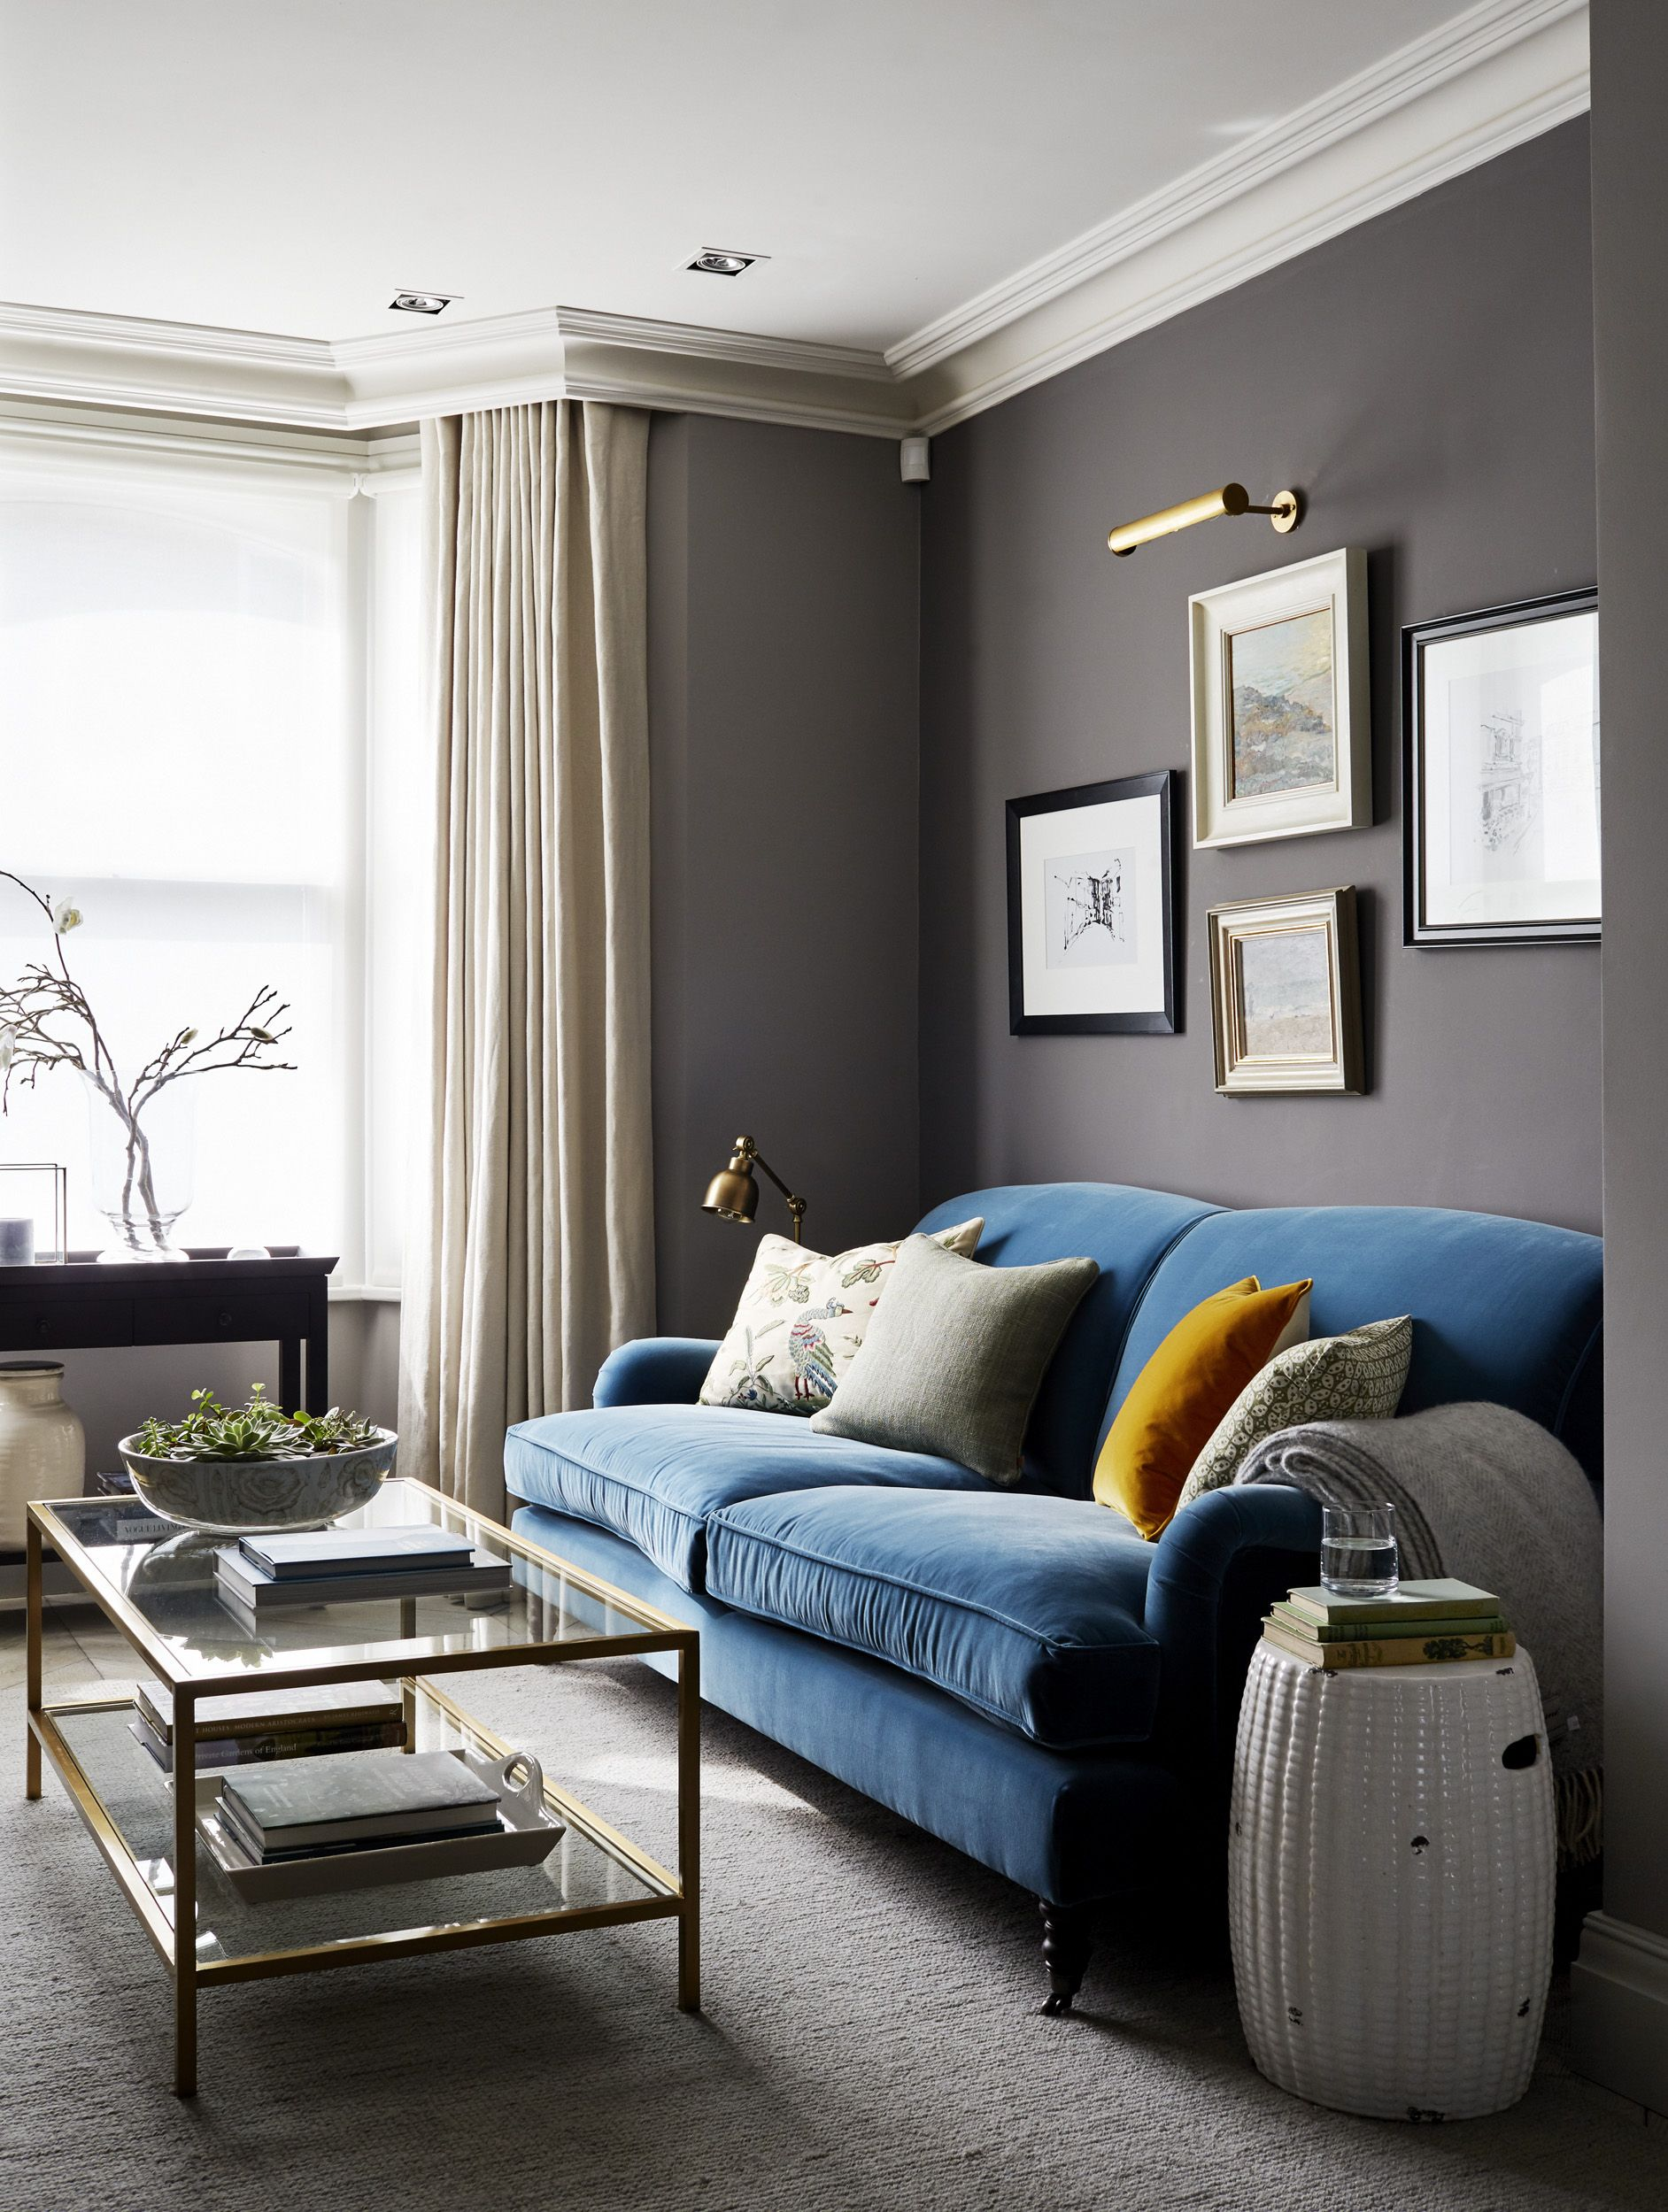 Townhouse Living Room Design: Parsons Green Townhouse Sitting Room